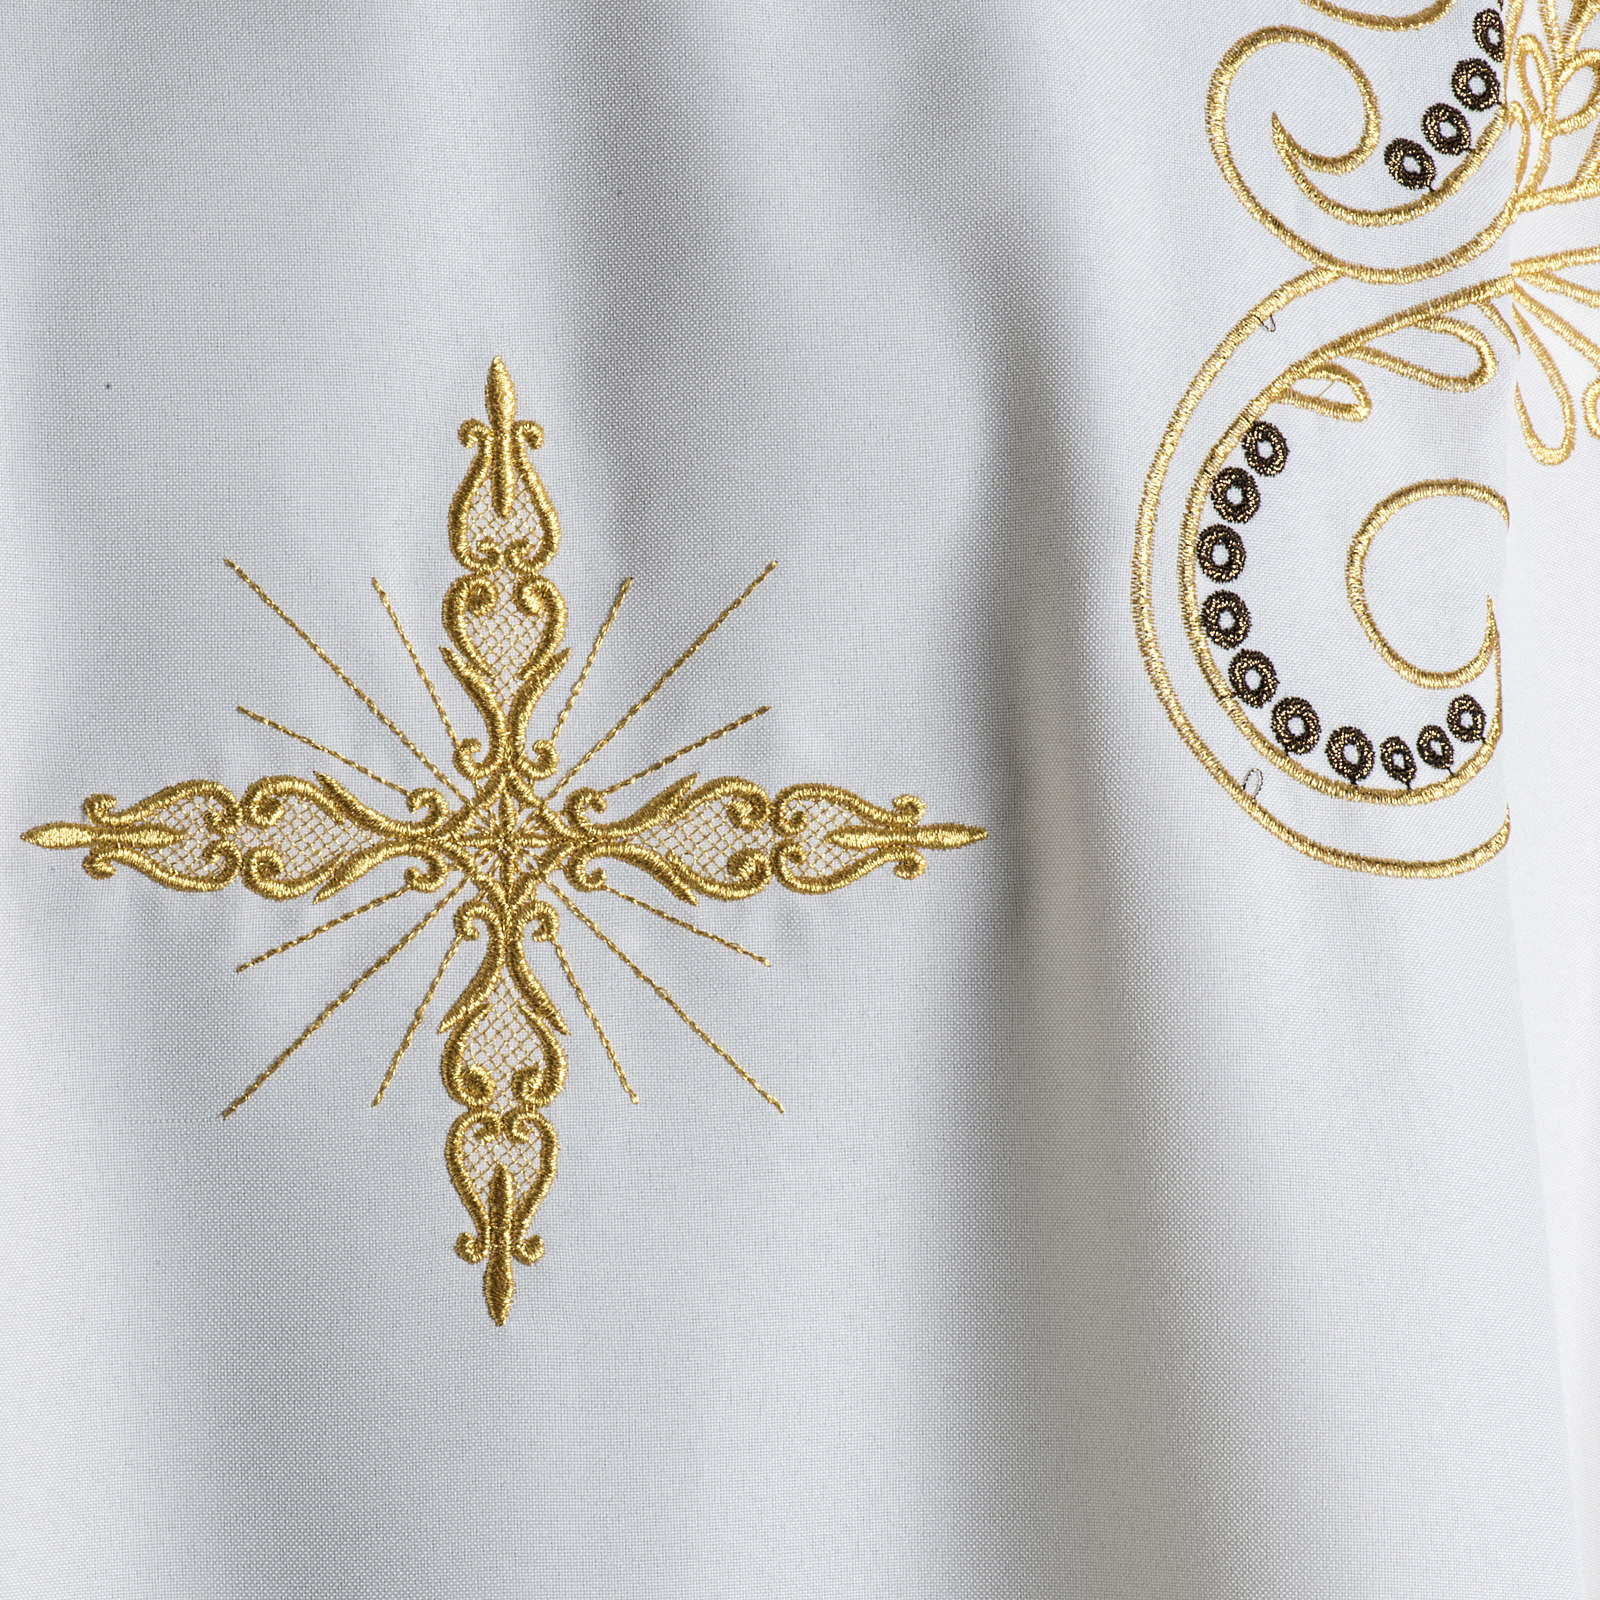 Chasuble golden cross embroidery 4